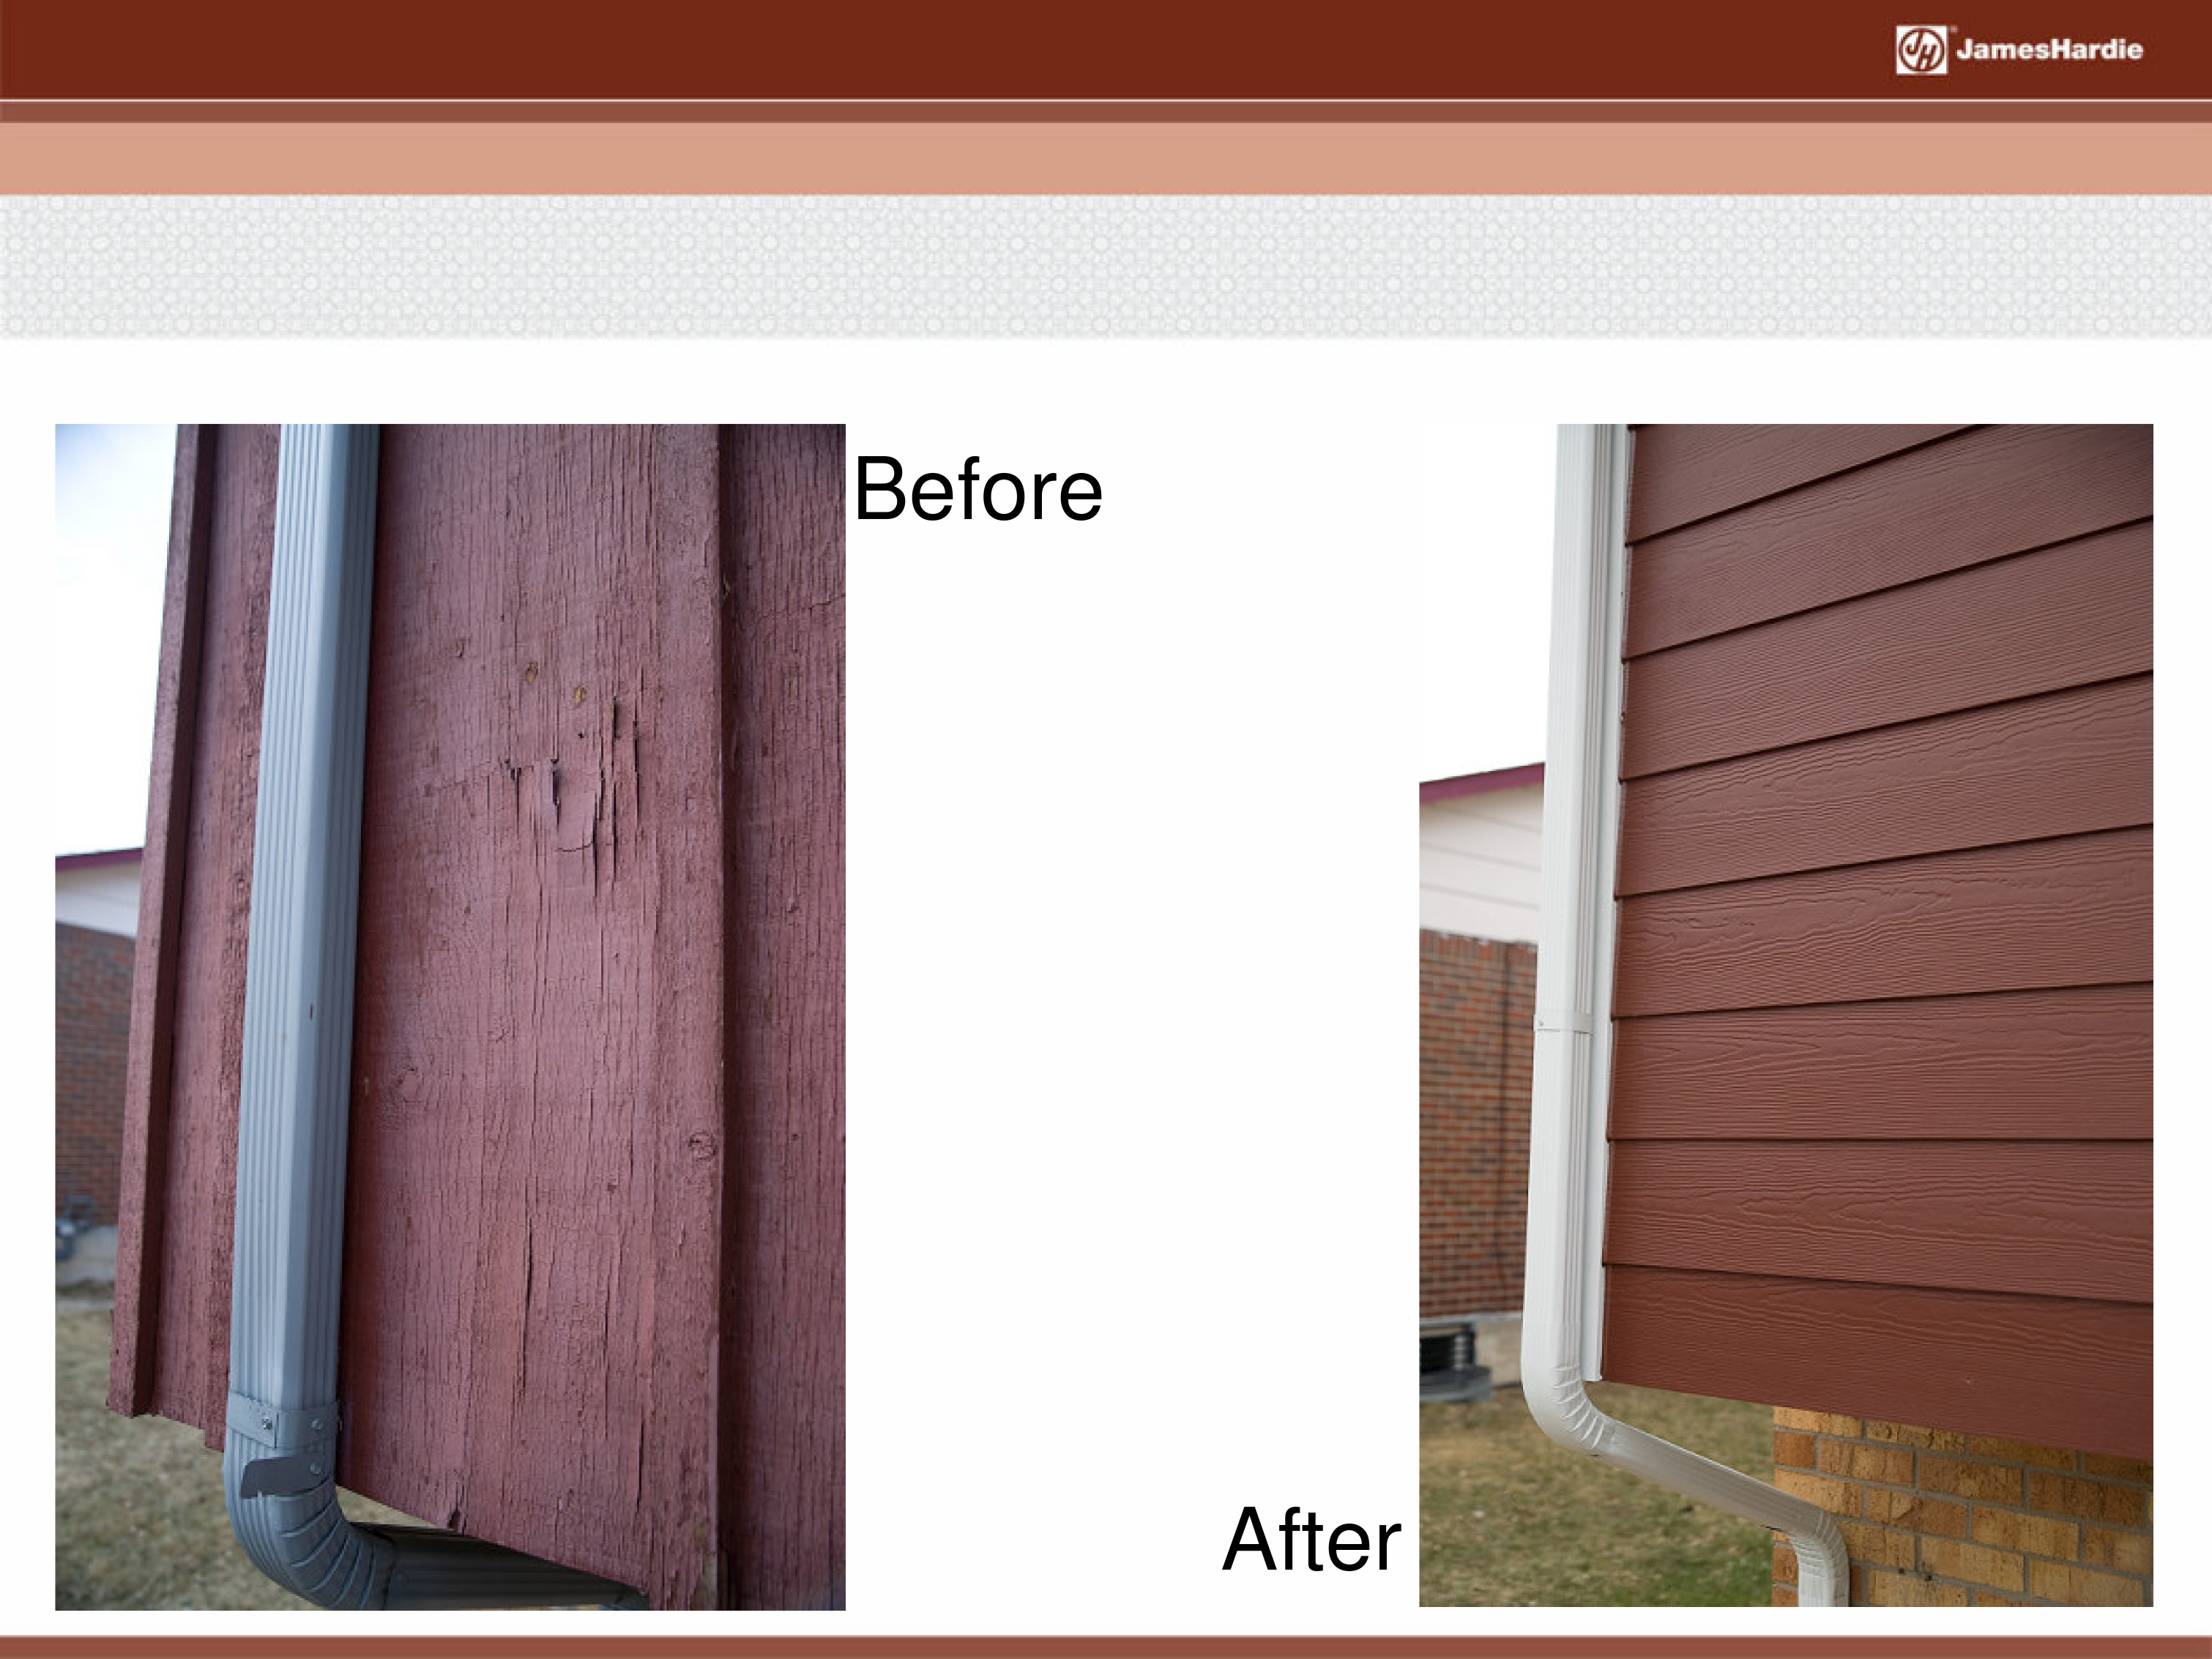 Before and After James Hardie Siding 40